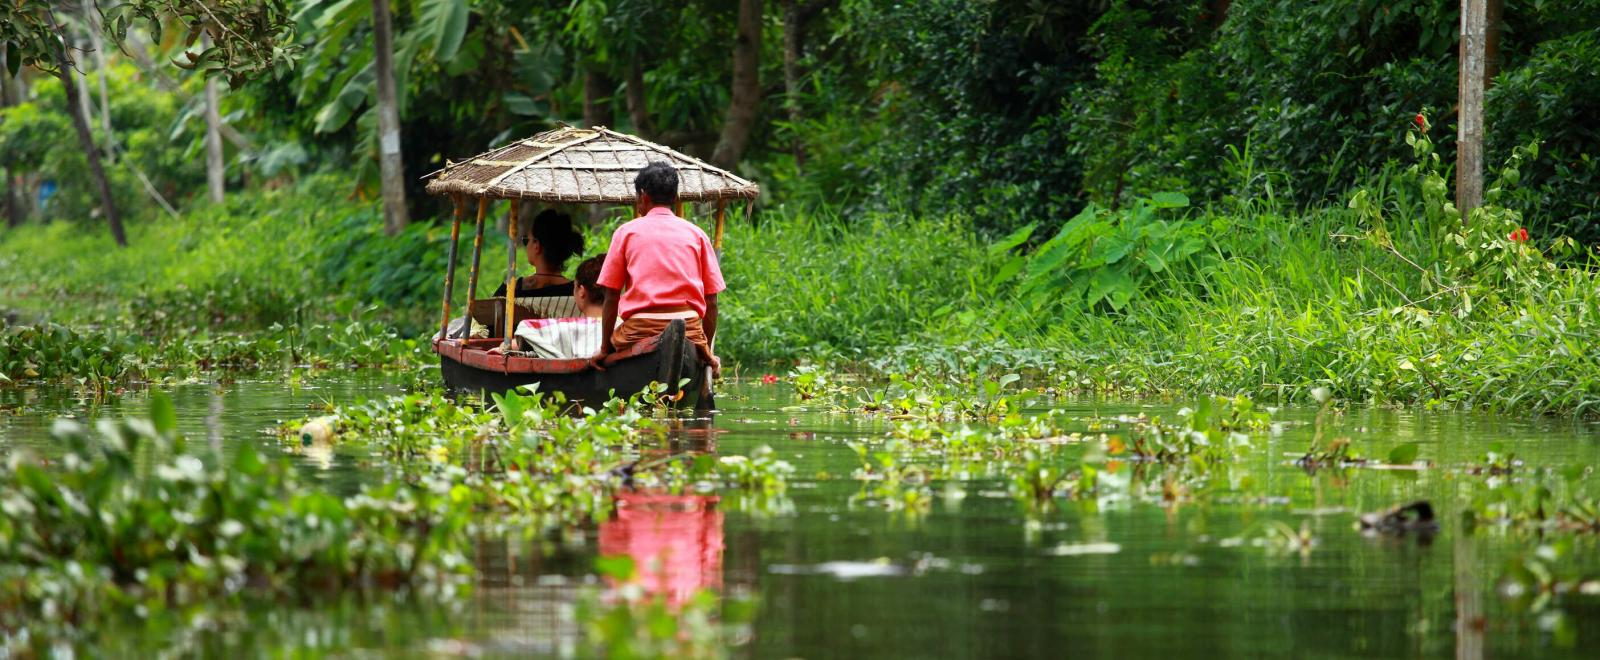 Local man take a boat on the water in the Kerala Backwaters in India.